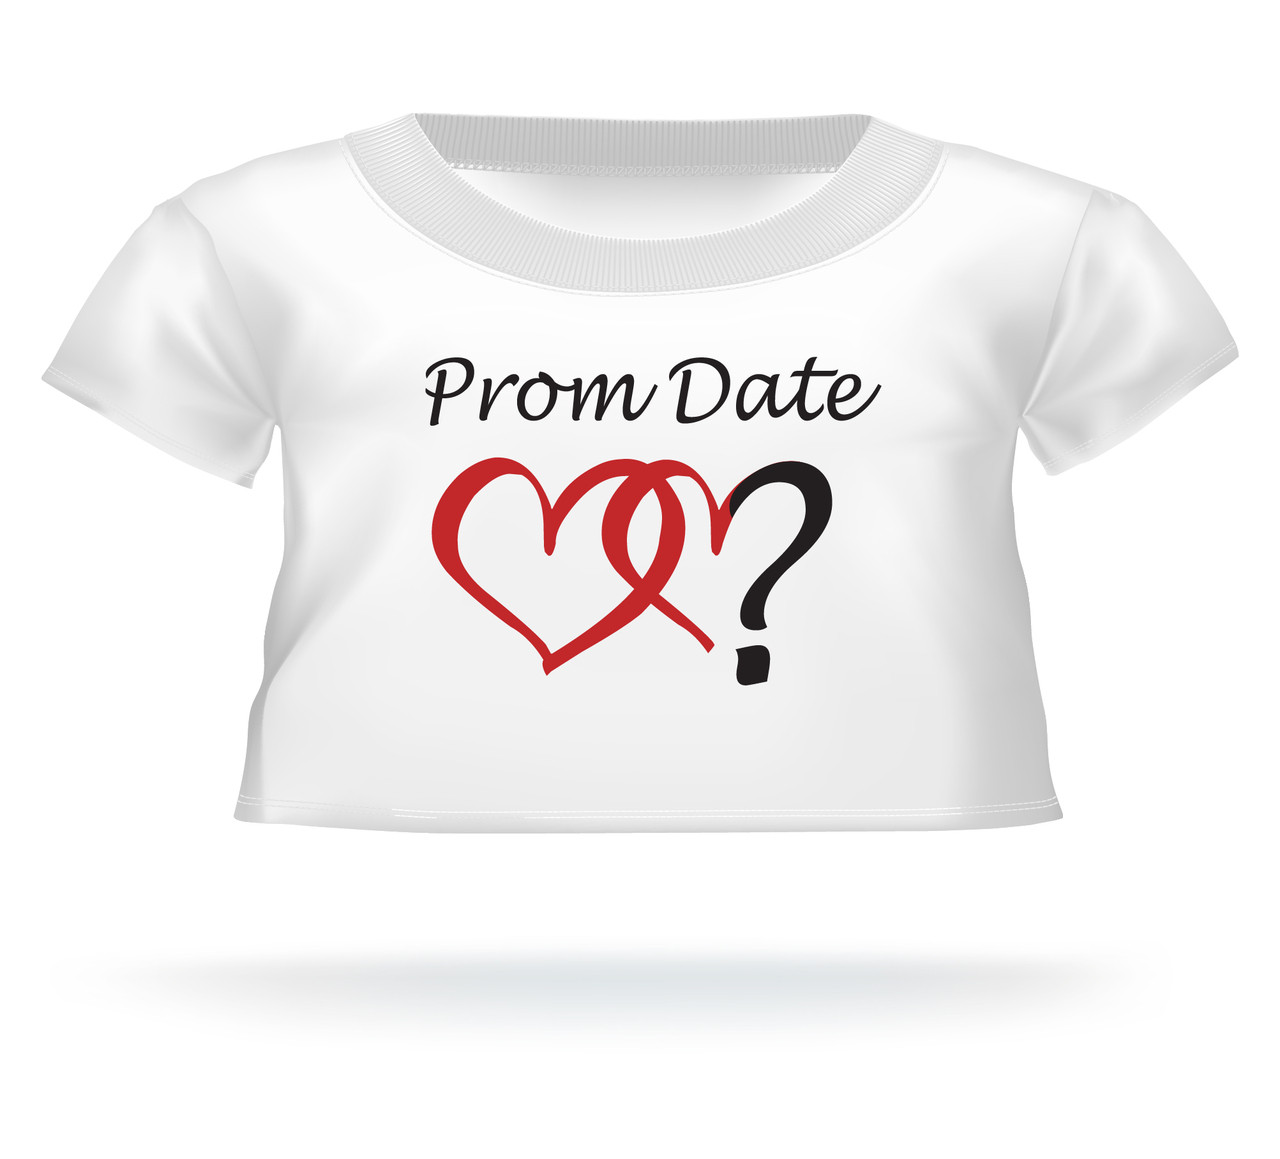 Giant Teddy Bear Prom Date? T-Shirt